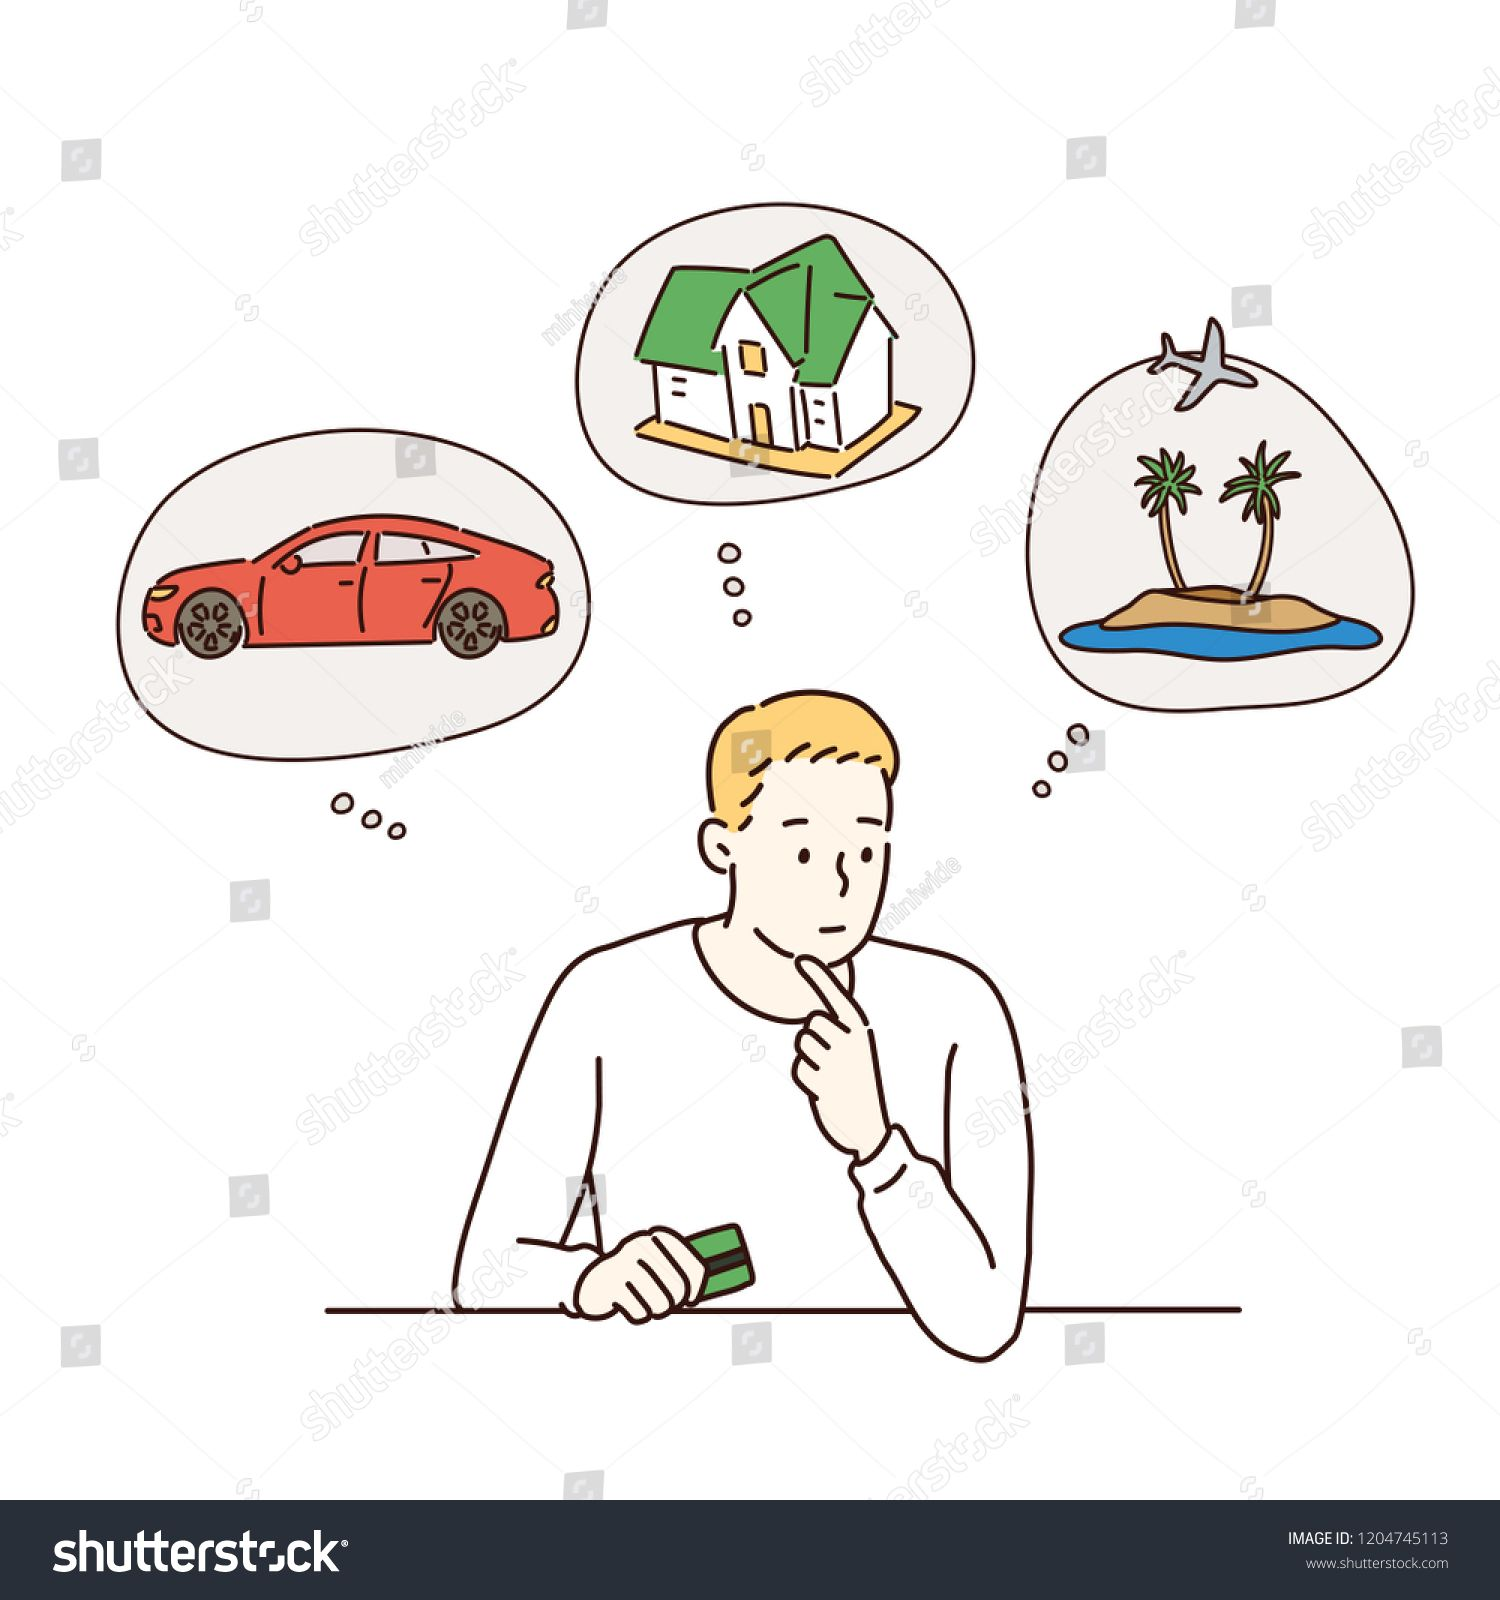 A man is in trouble to decide what to do. hand drawn style vector design illustrations. #Ad , #ad, #decide#hand#man#trouble